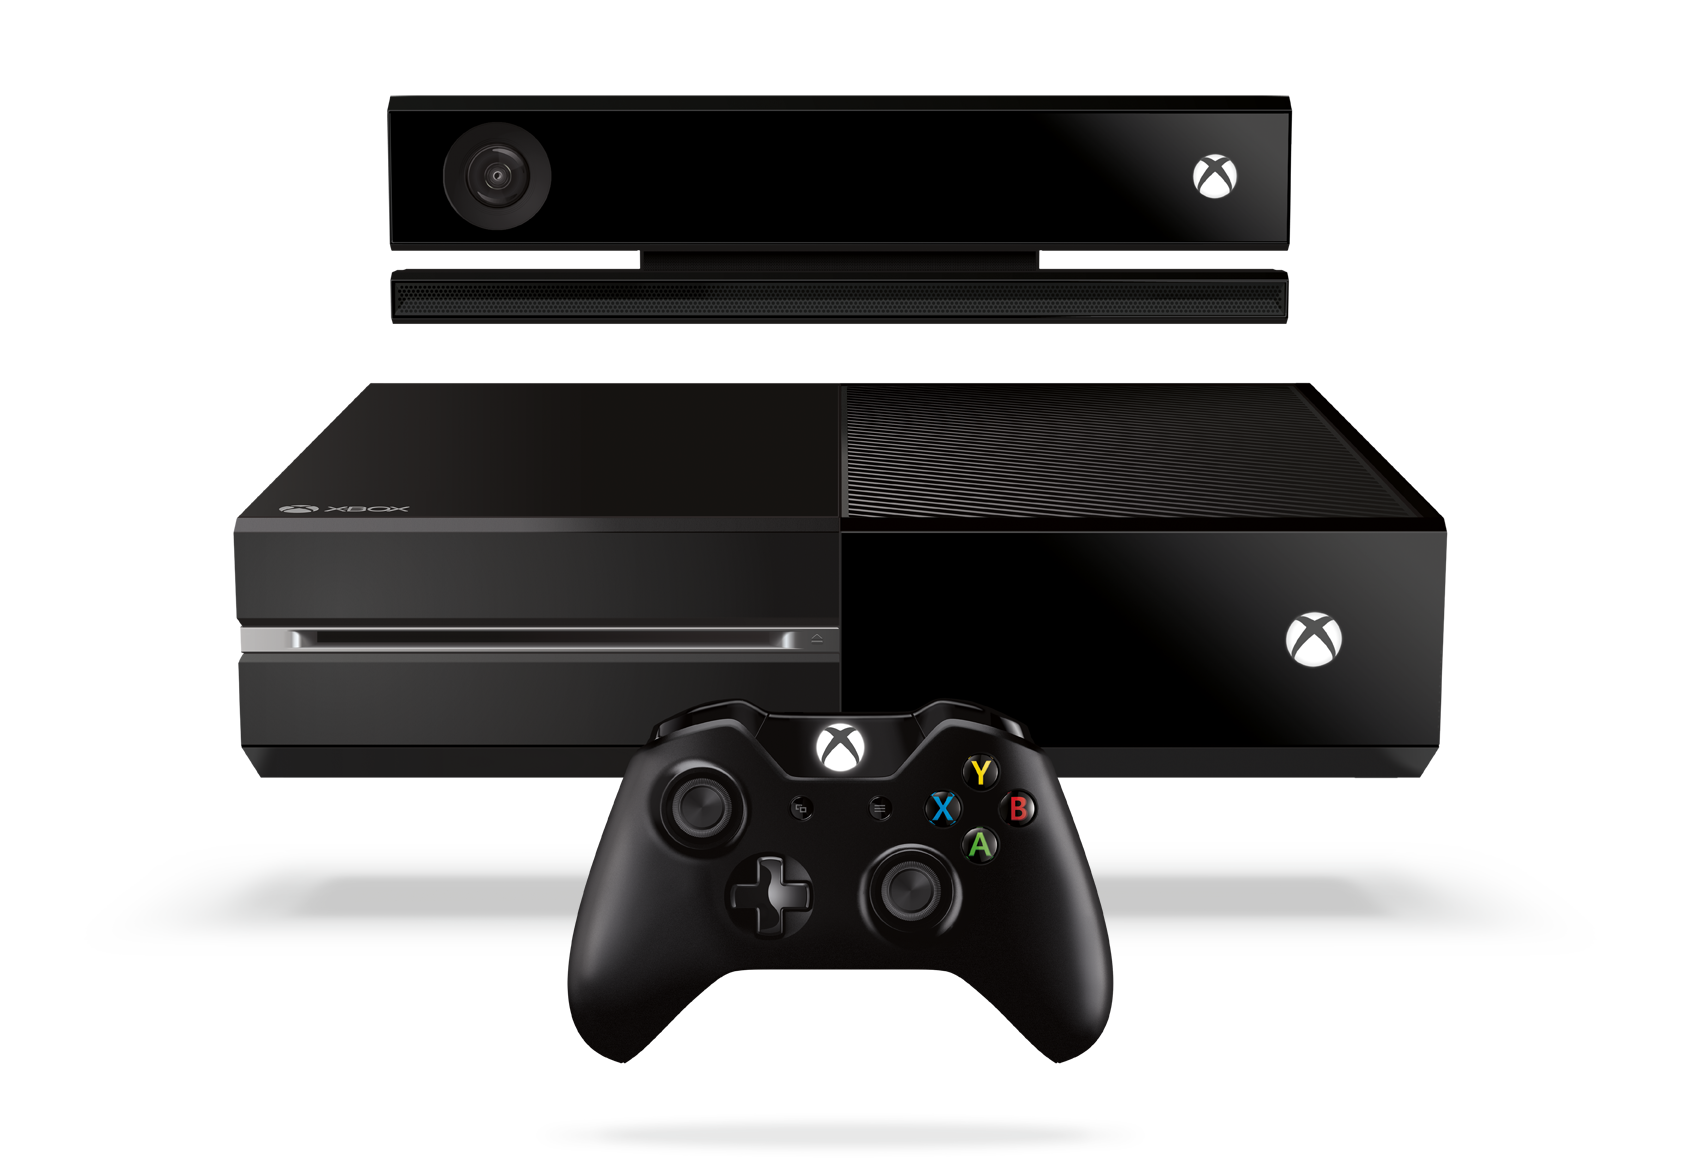 XBox One - Game-Konsole und Home-Entertainment